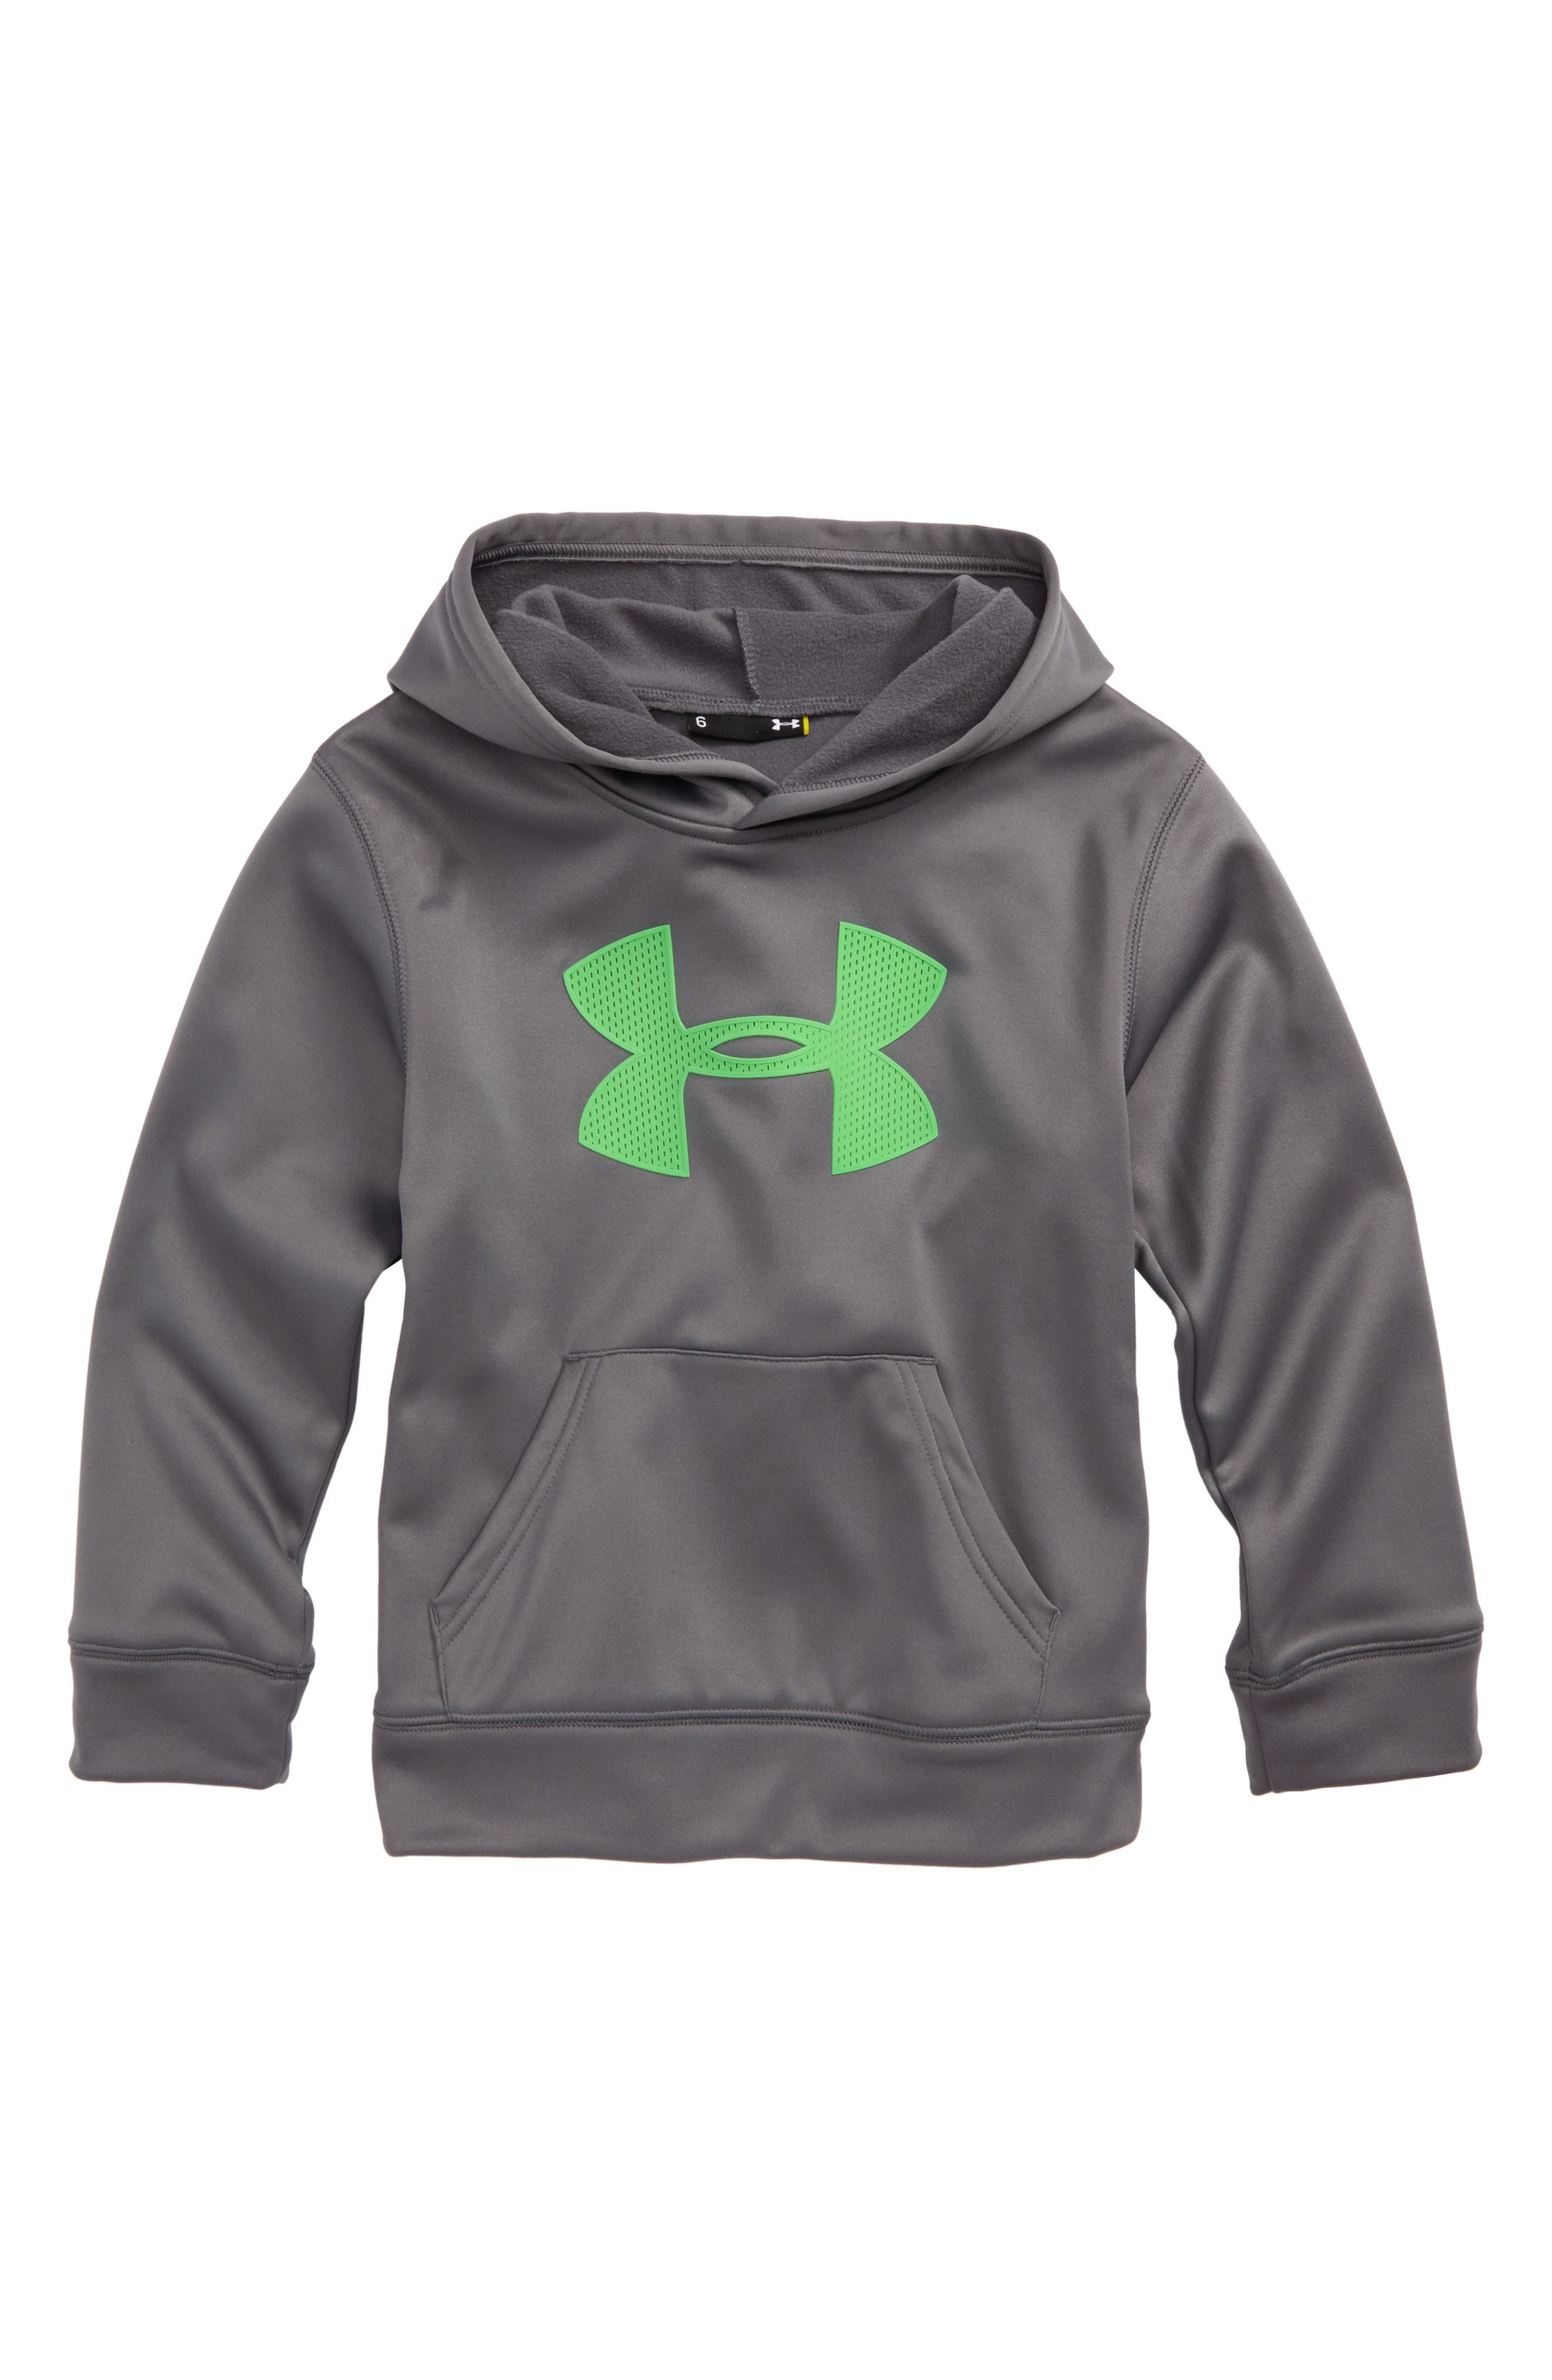 All Baby & Kids' Under Armour Sale | Nordstrom